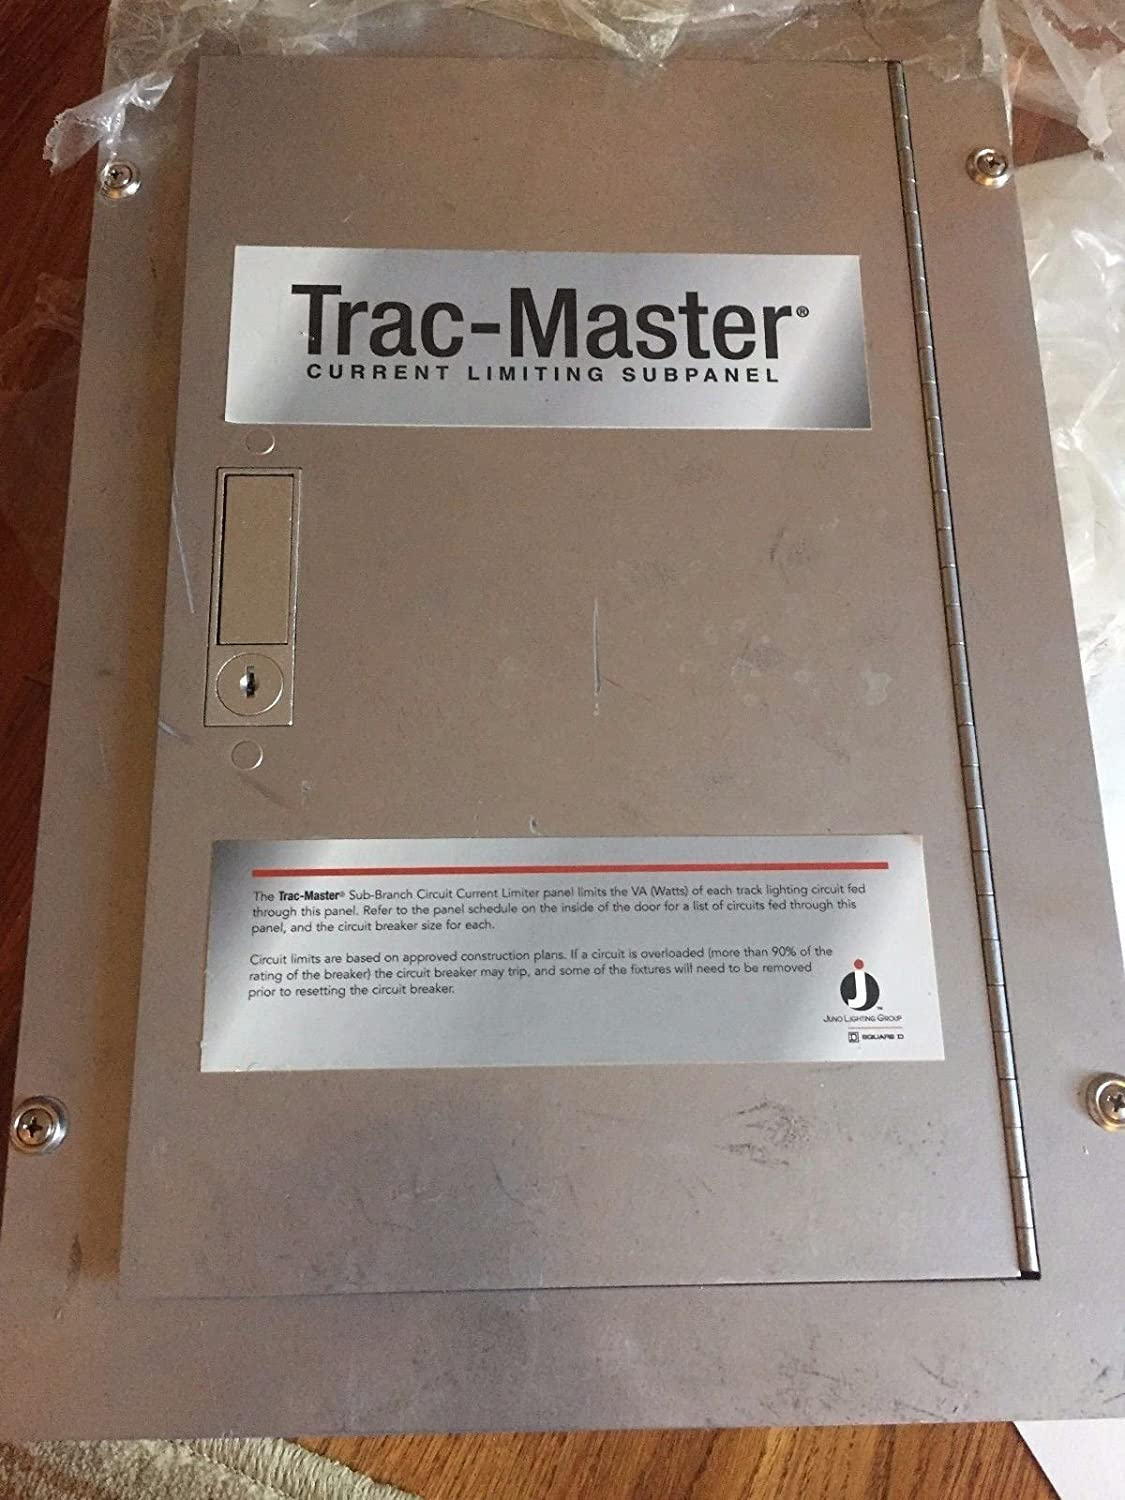 Juno Cls21trac Master Current Limiting Subpanelpanel Circuit 21 Breakboxyl Everything Else